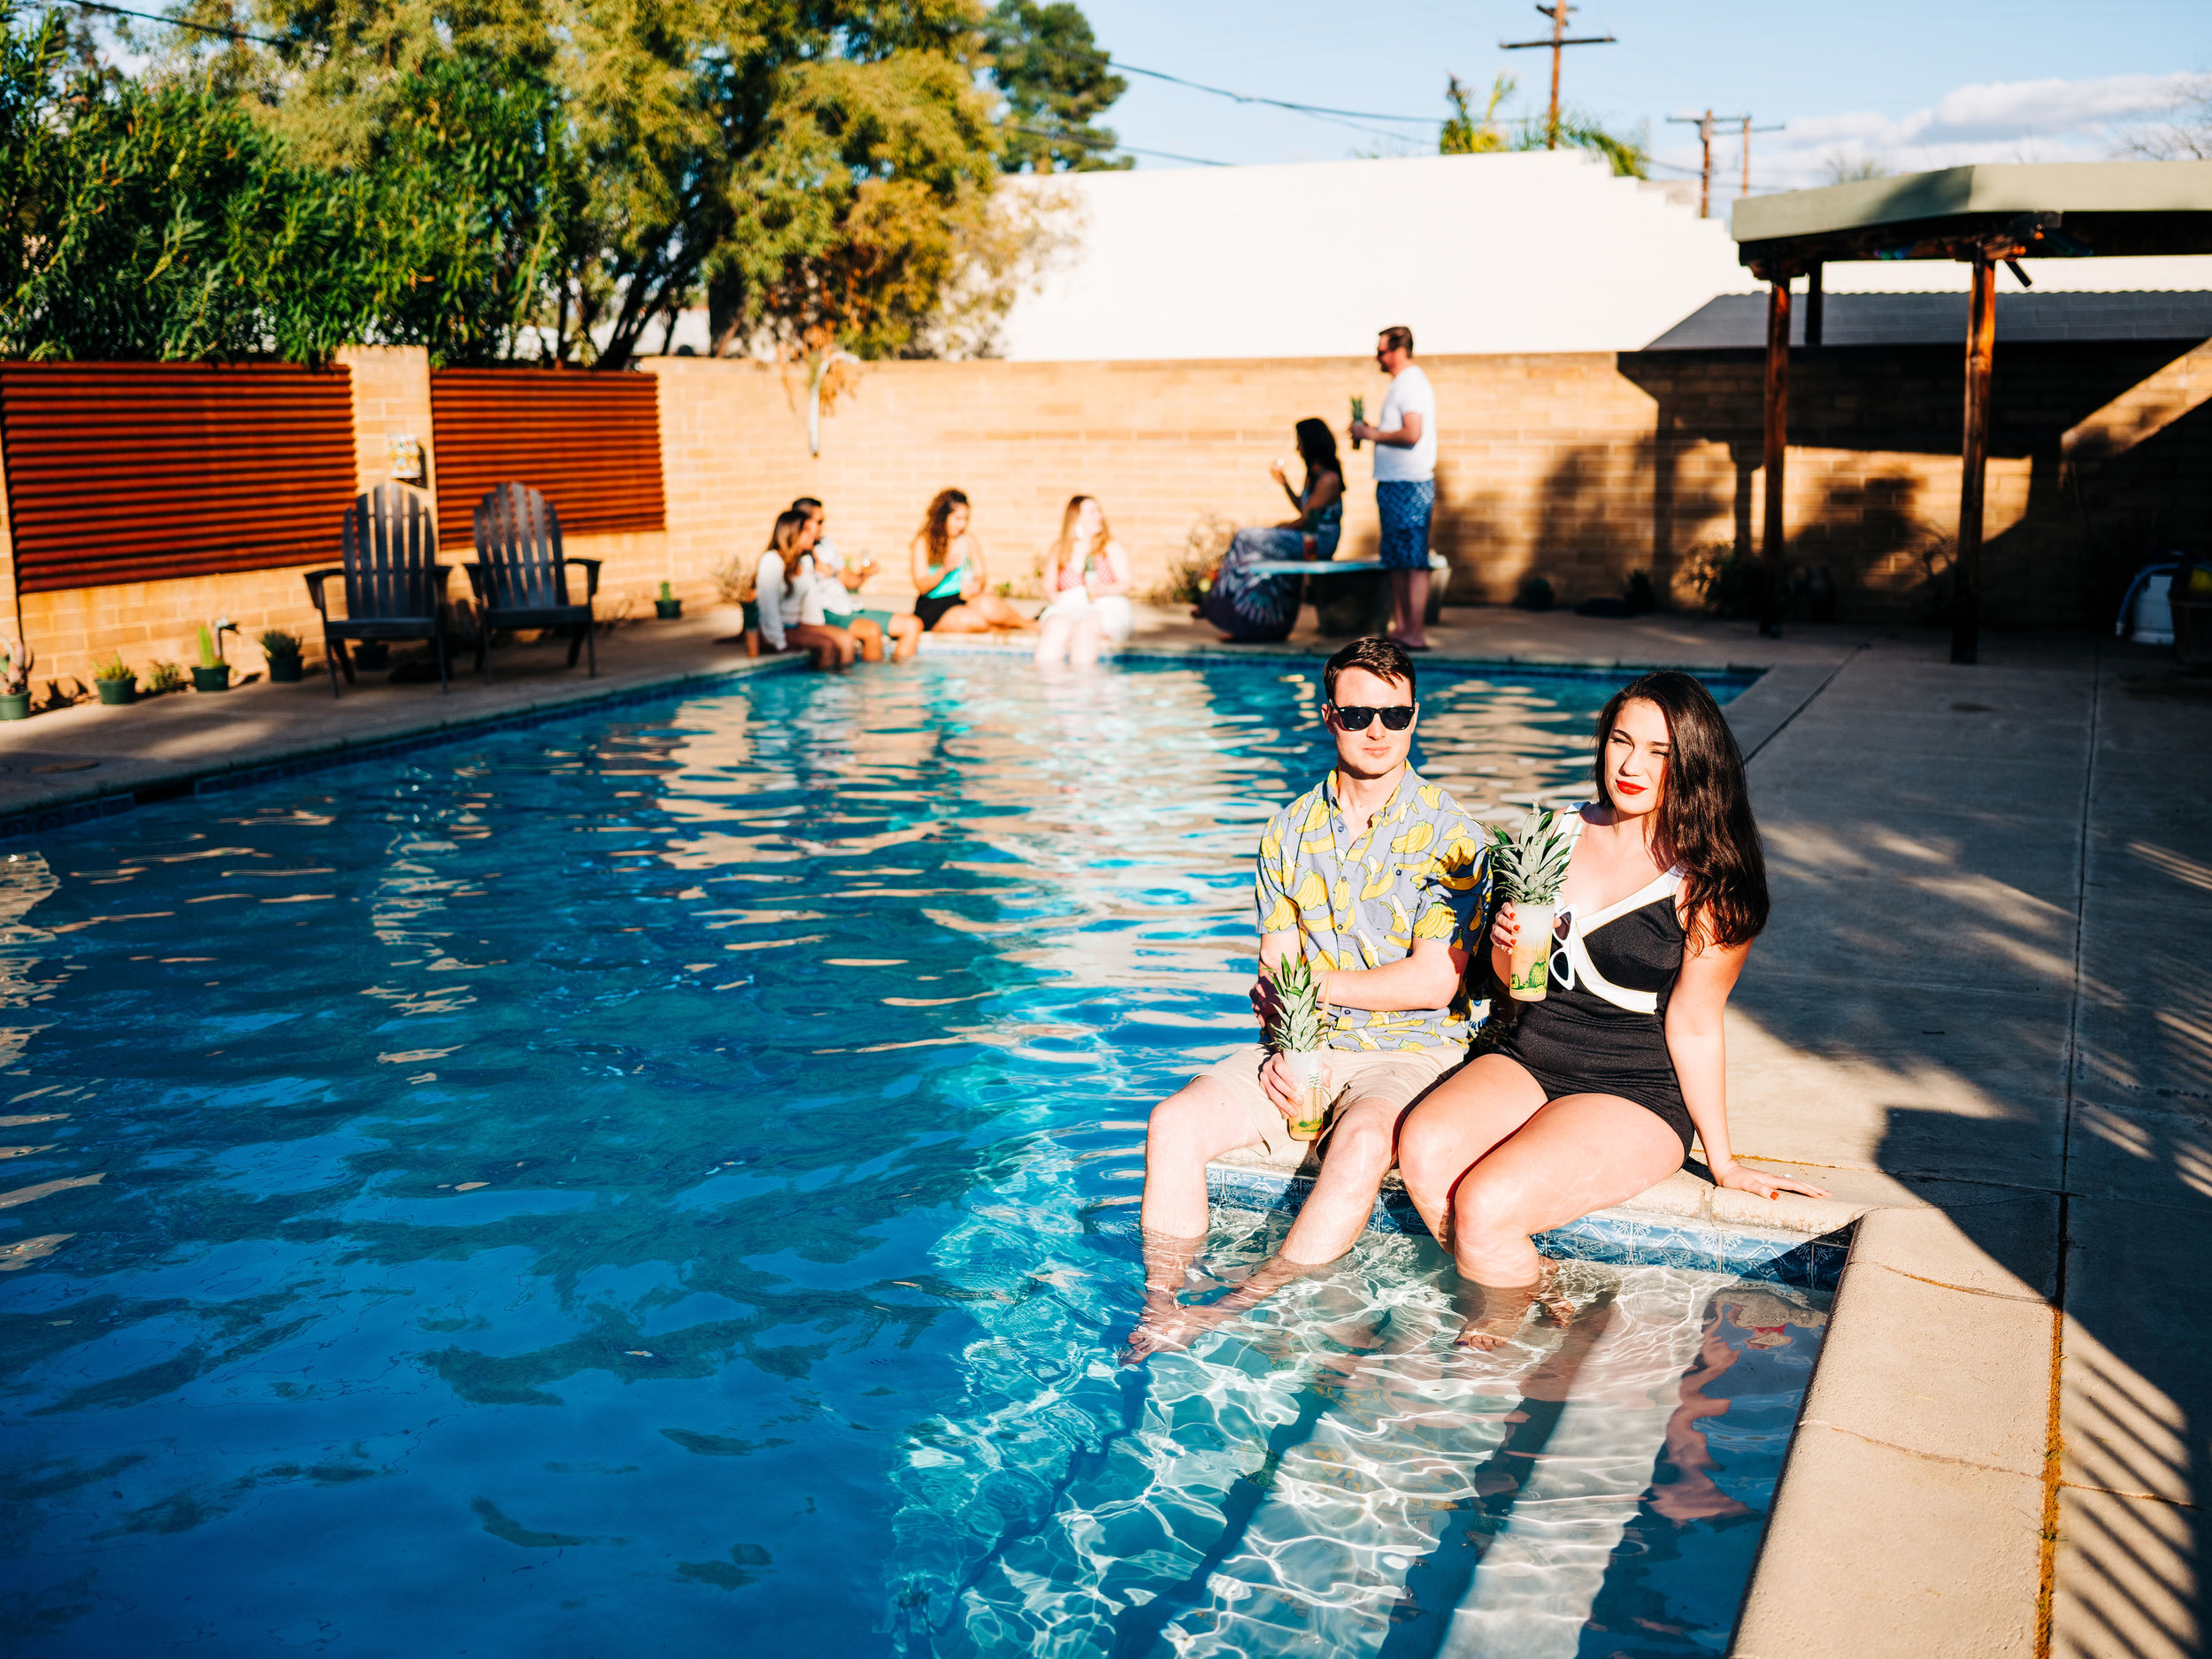 Andy-Shepard-Photography-Tucson-Pool-Party-69.jpg